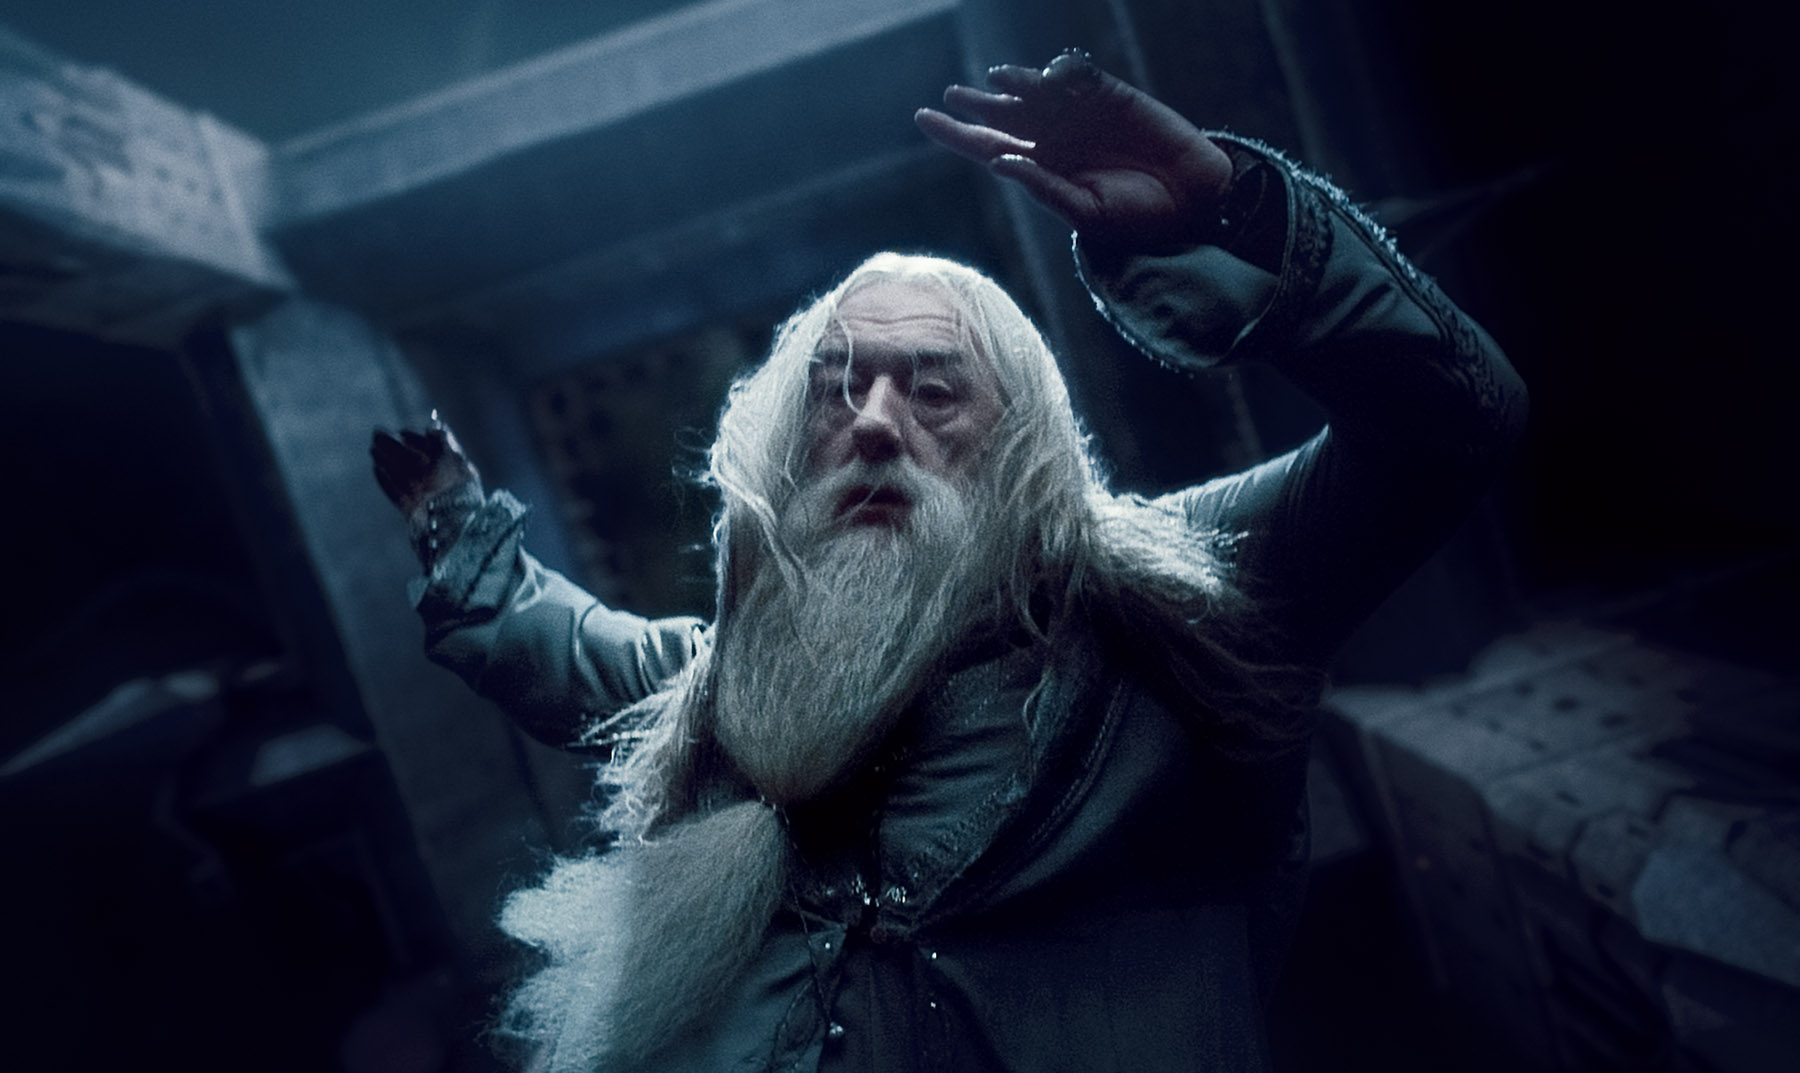 Dumbledore in Harry Potter and the Deathly Hallows Desktop Wallpaper 1800x1073